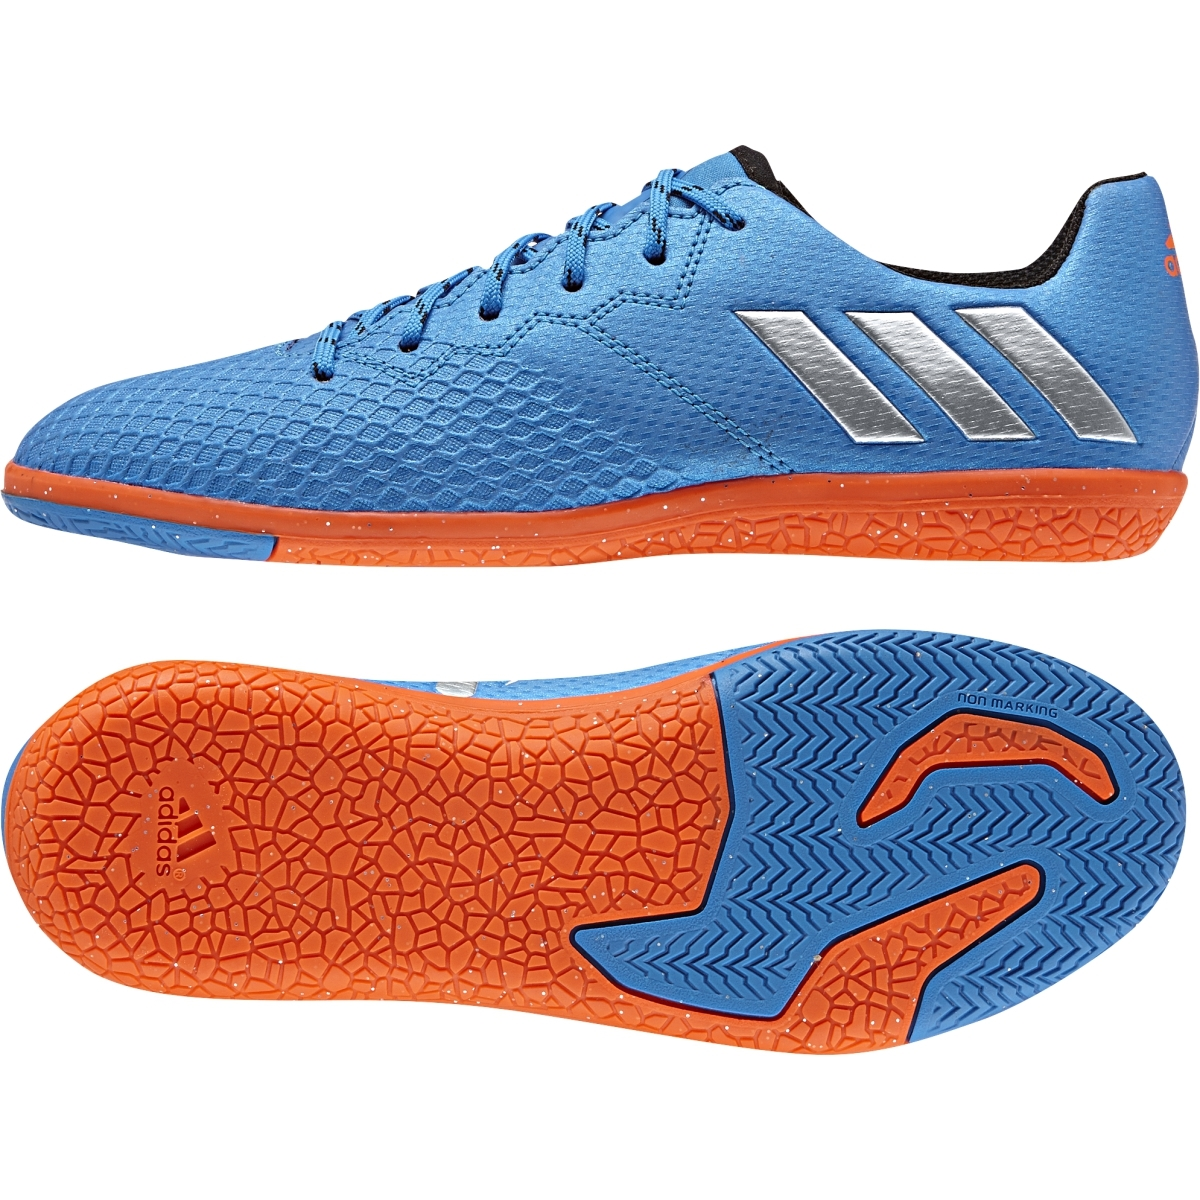 16ea327d80bb Adidas Messi 16.3 Kids Indoor Shoe in Blue and Silver - S79640 ...